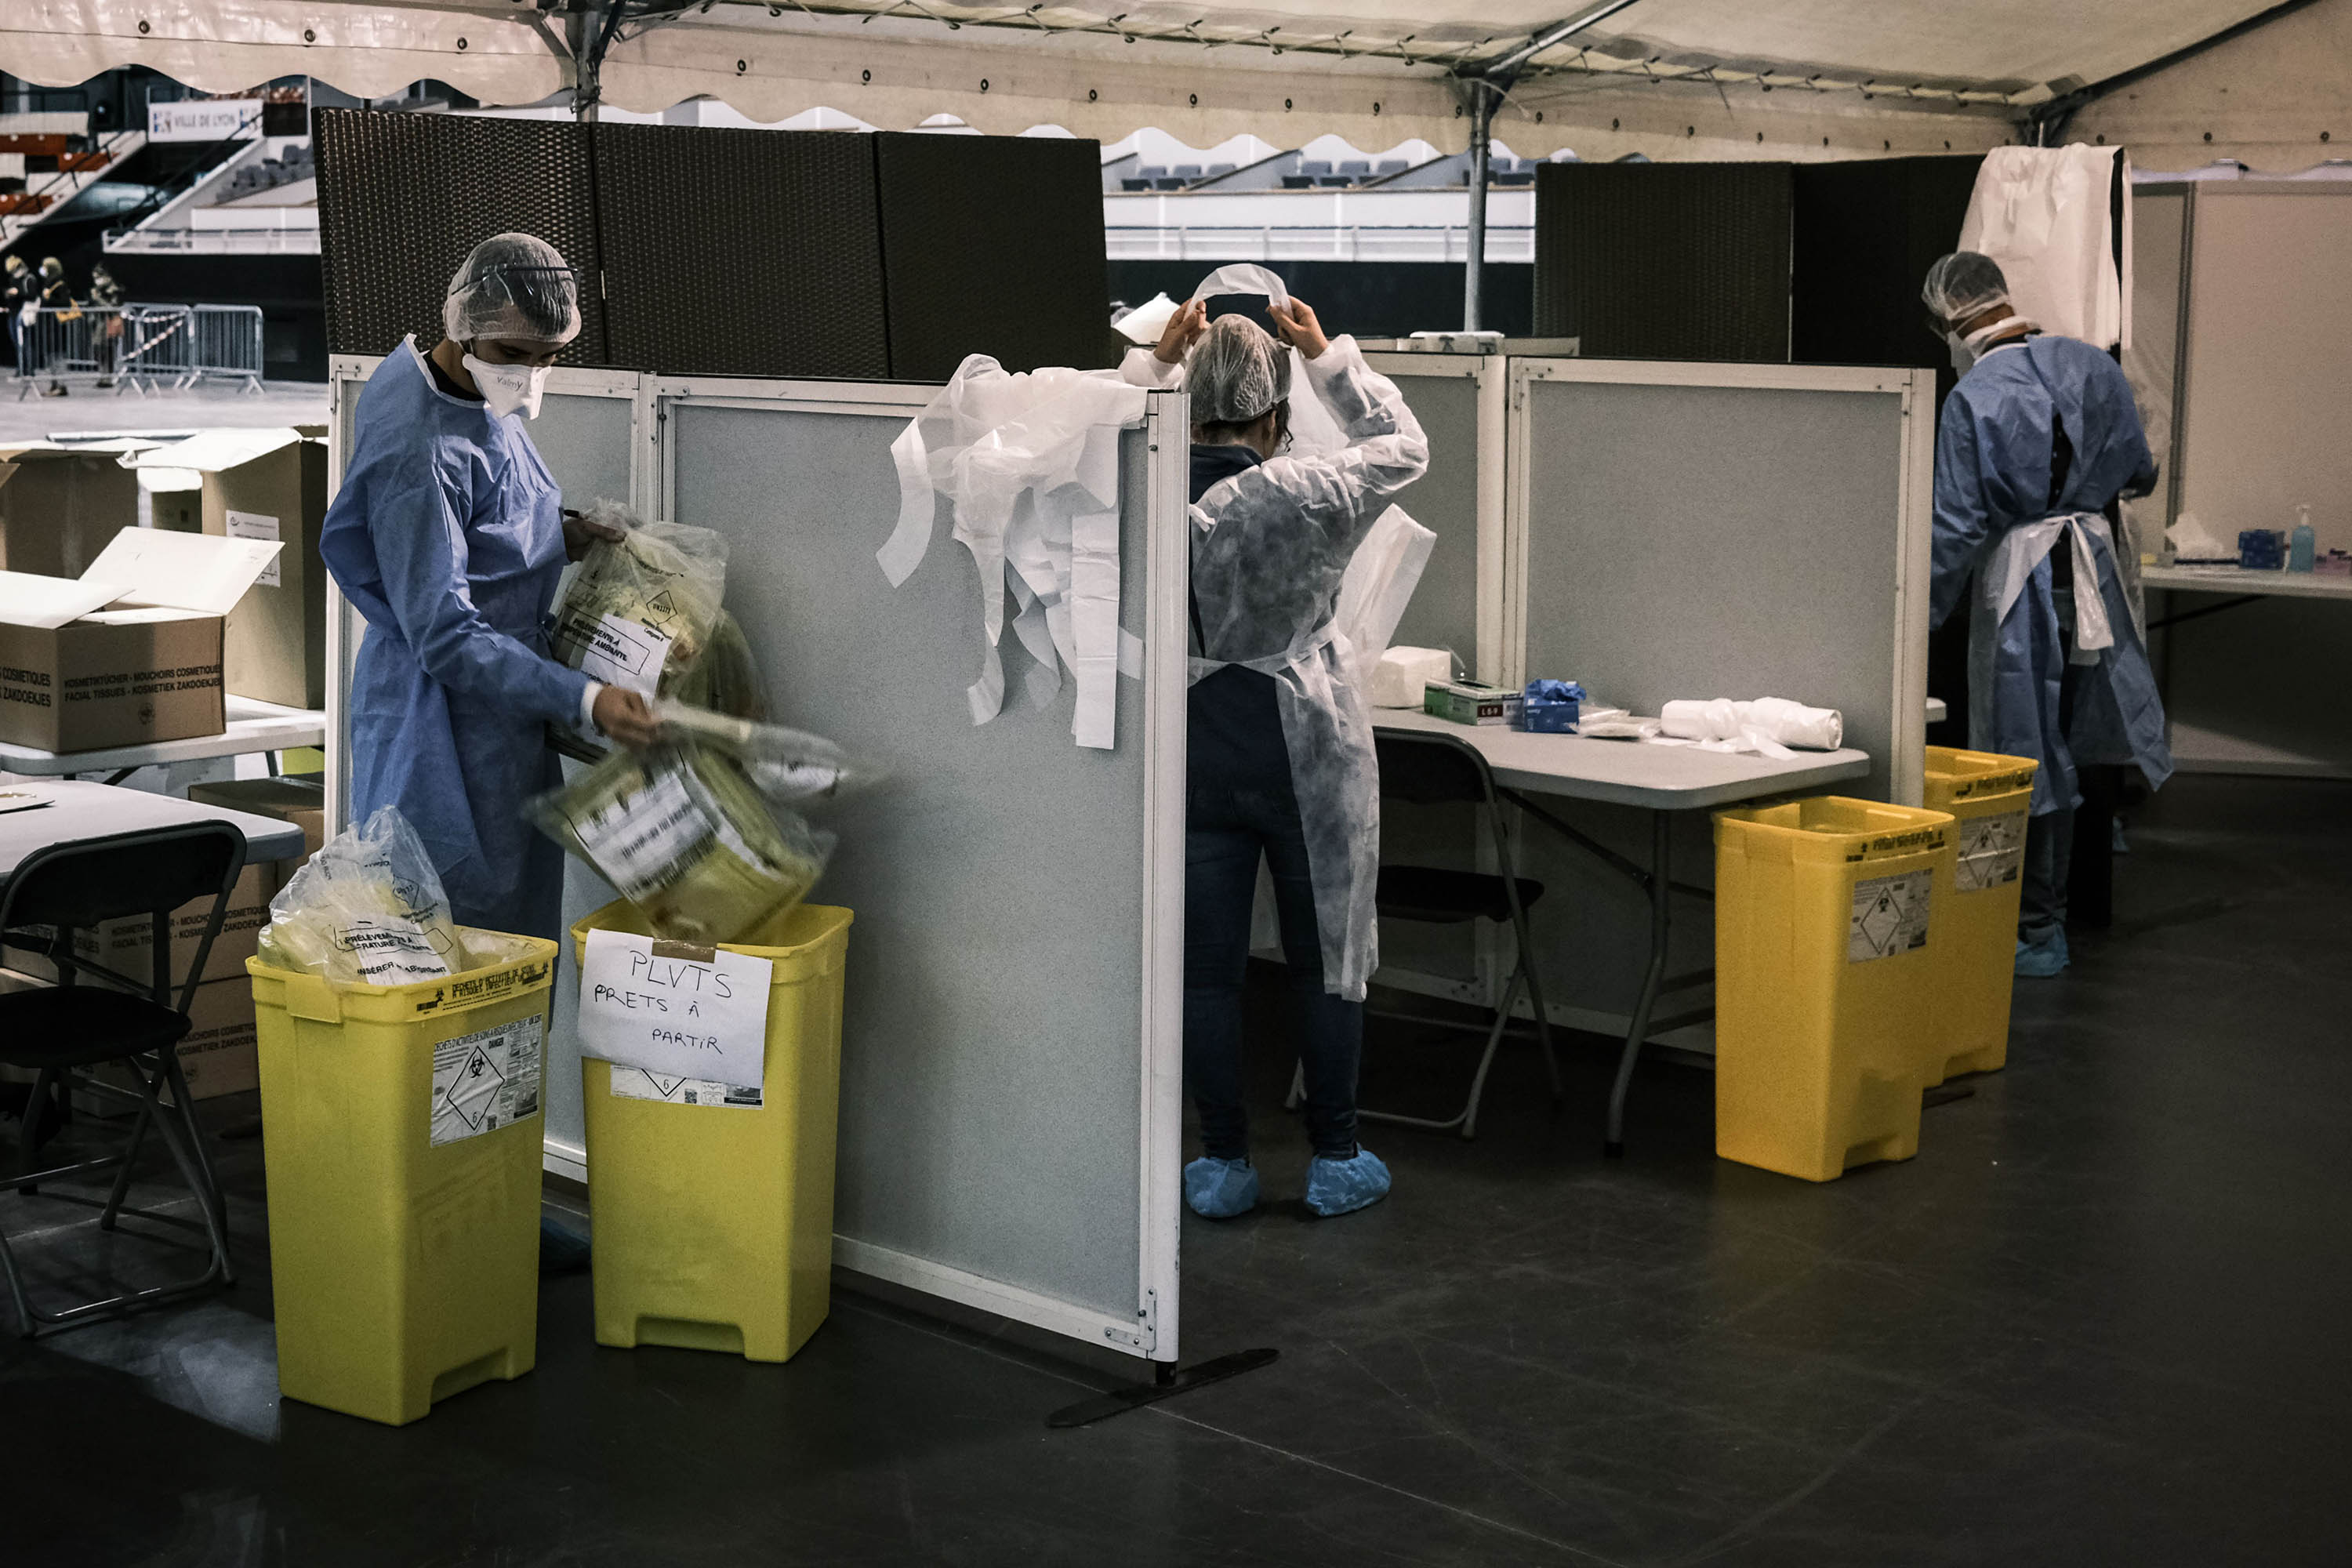 Medical personnel work on October 12 in a sports arena, which was converted into a screening center to test people for Covid-19, in Lyon, France.